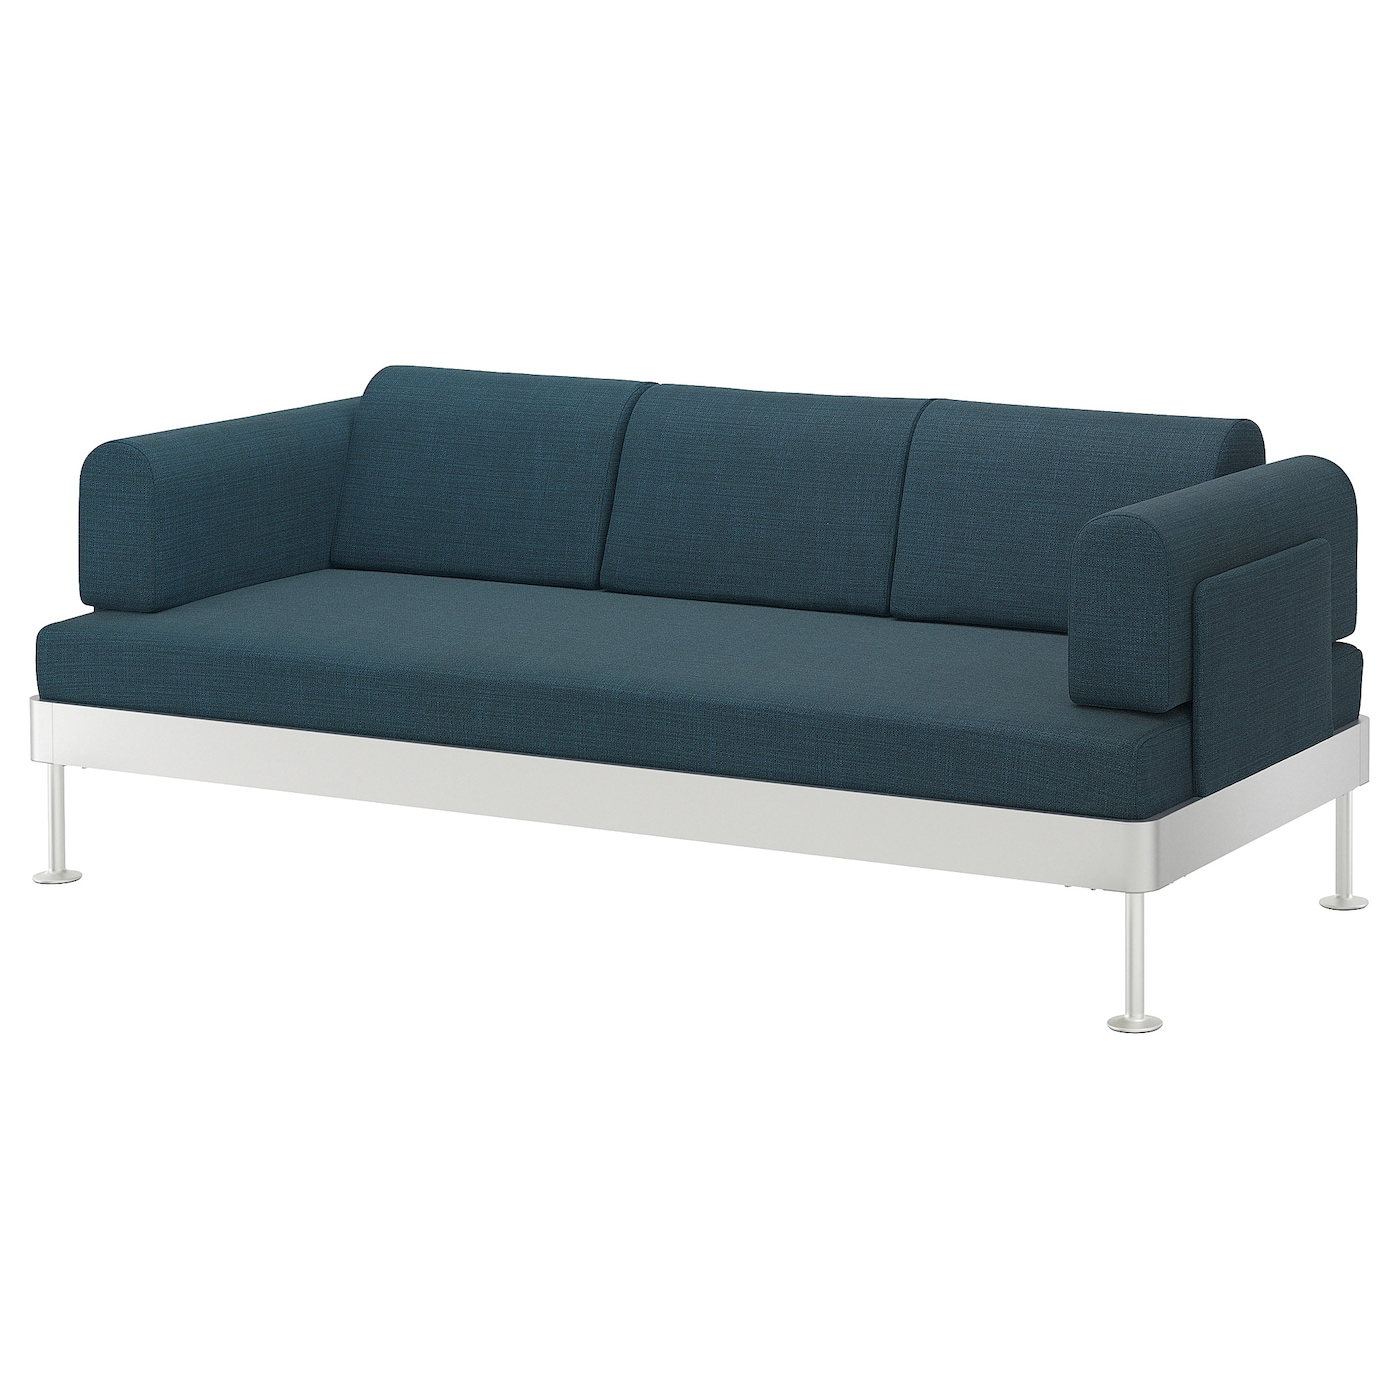 IKEA DELAKTIG 3-seat sofa The cover is easy to keep clean as it is removable and can be washed.